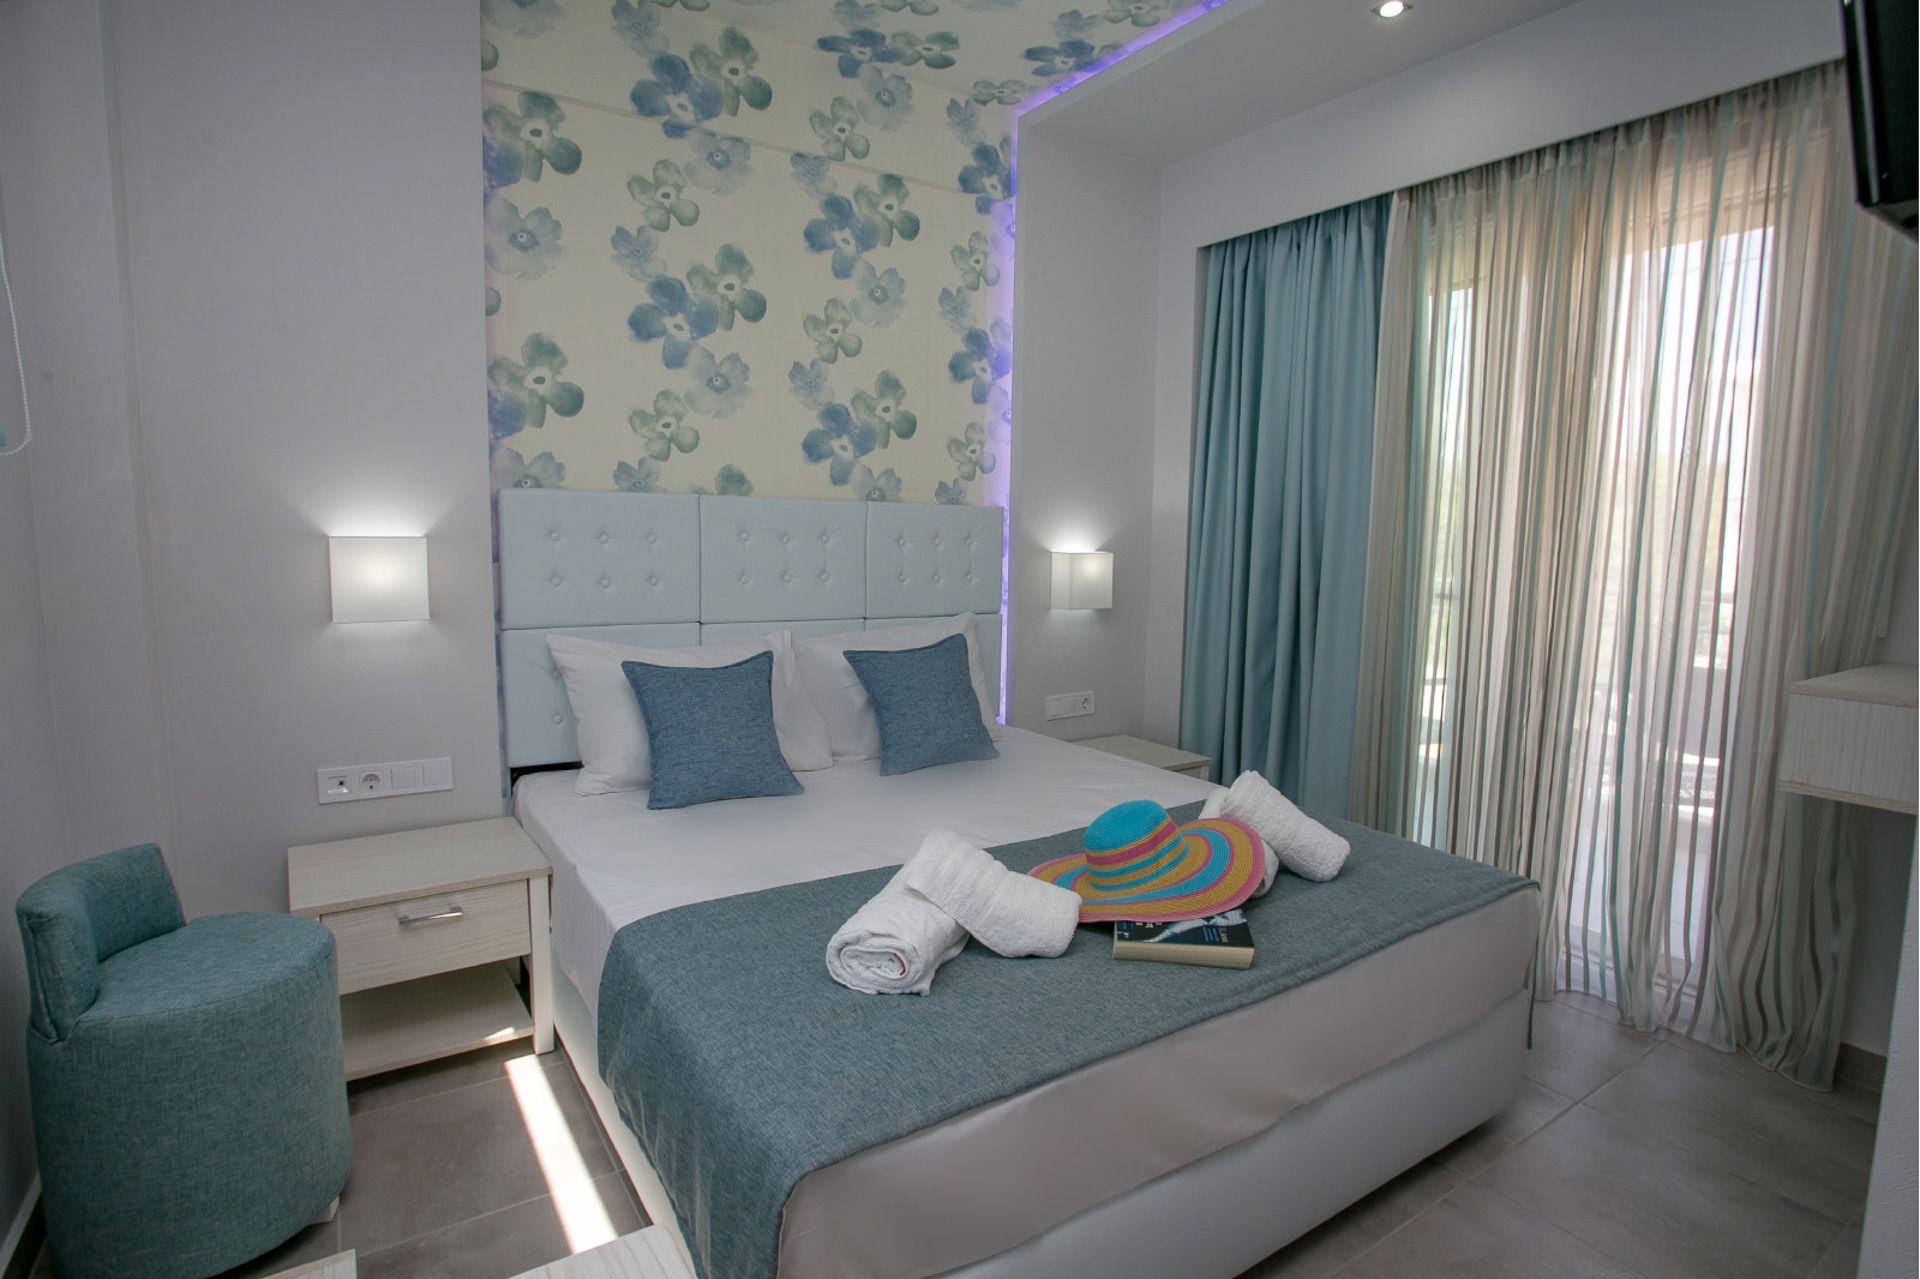 la feyra luxury rooms limenaria thassos aquamarine room 1